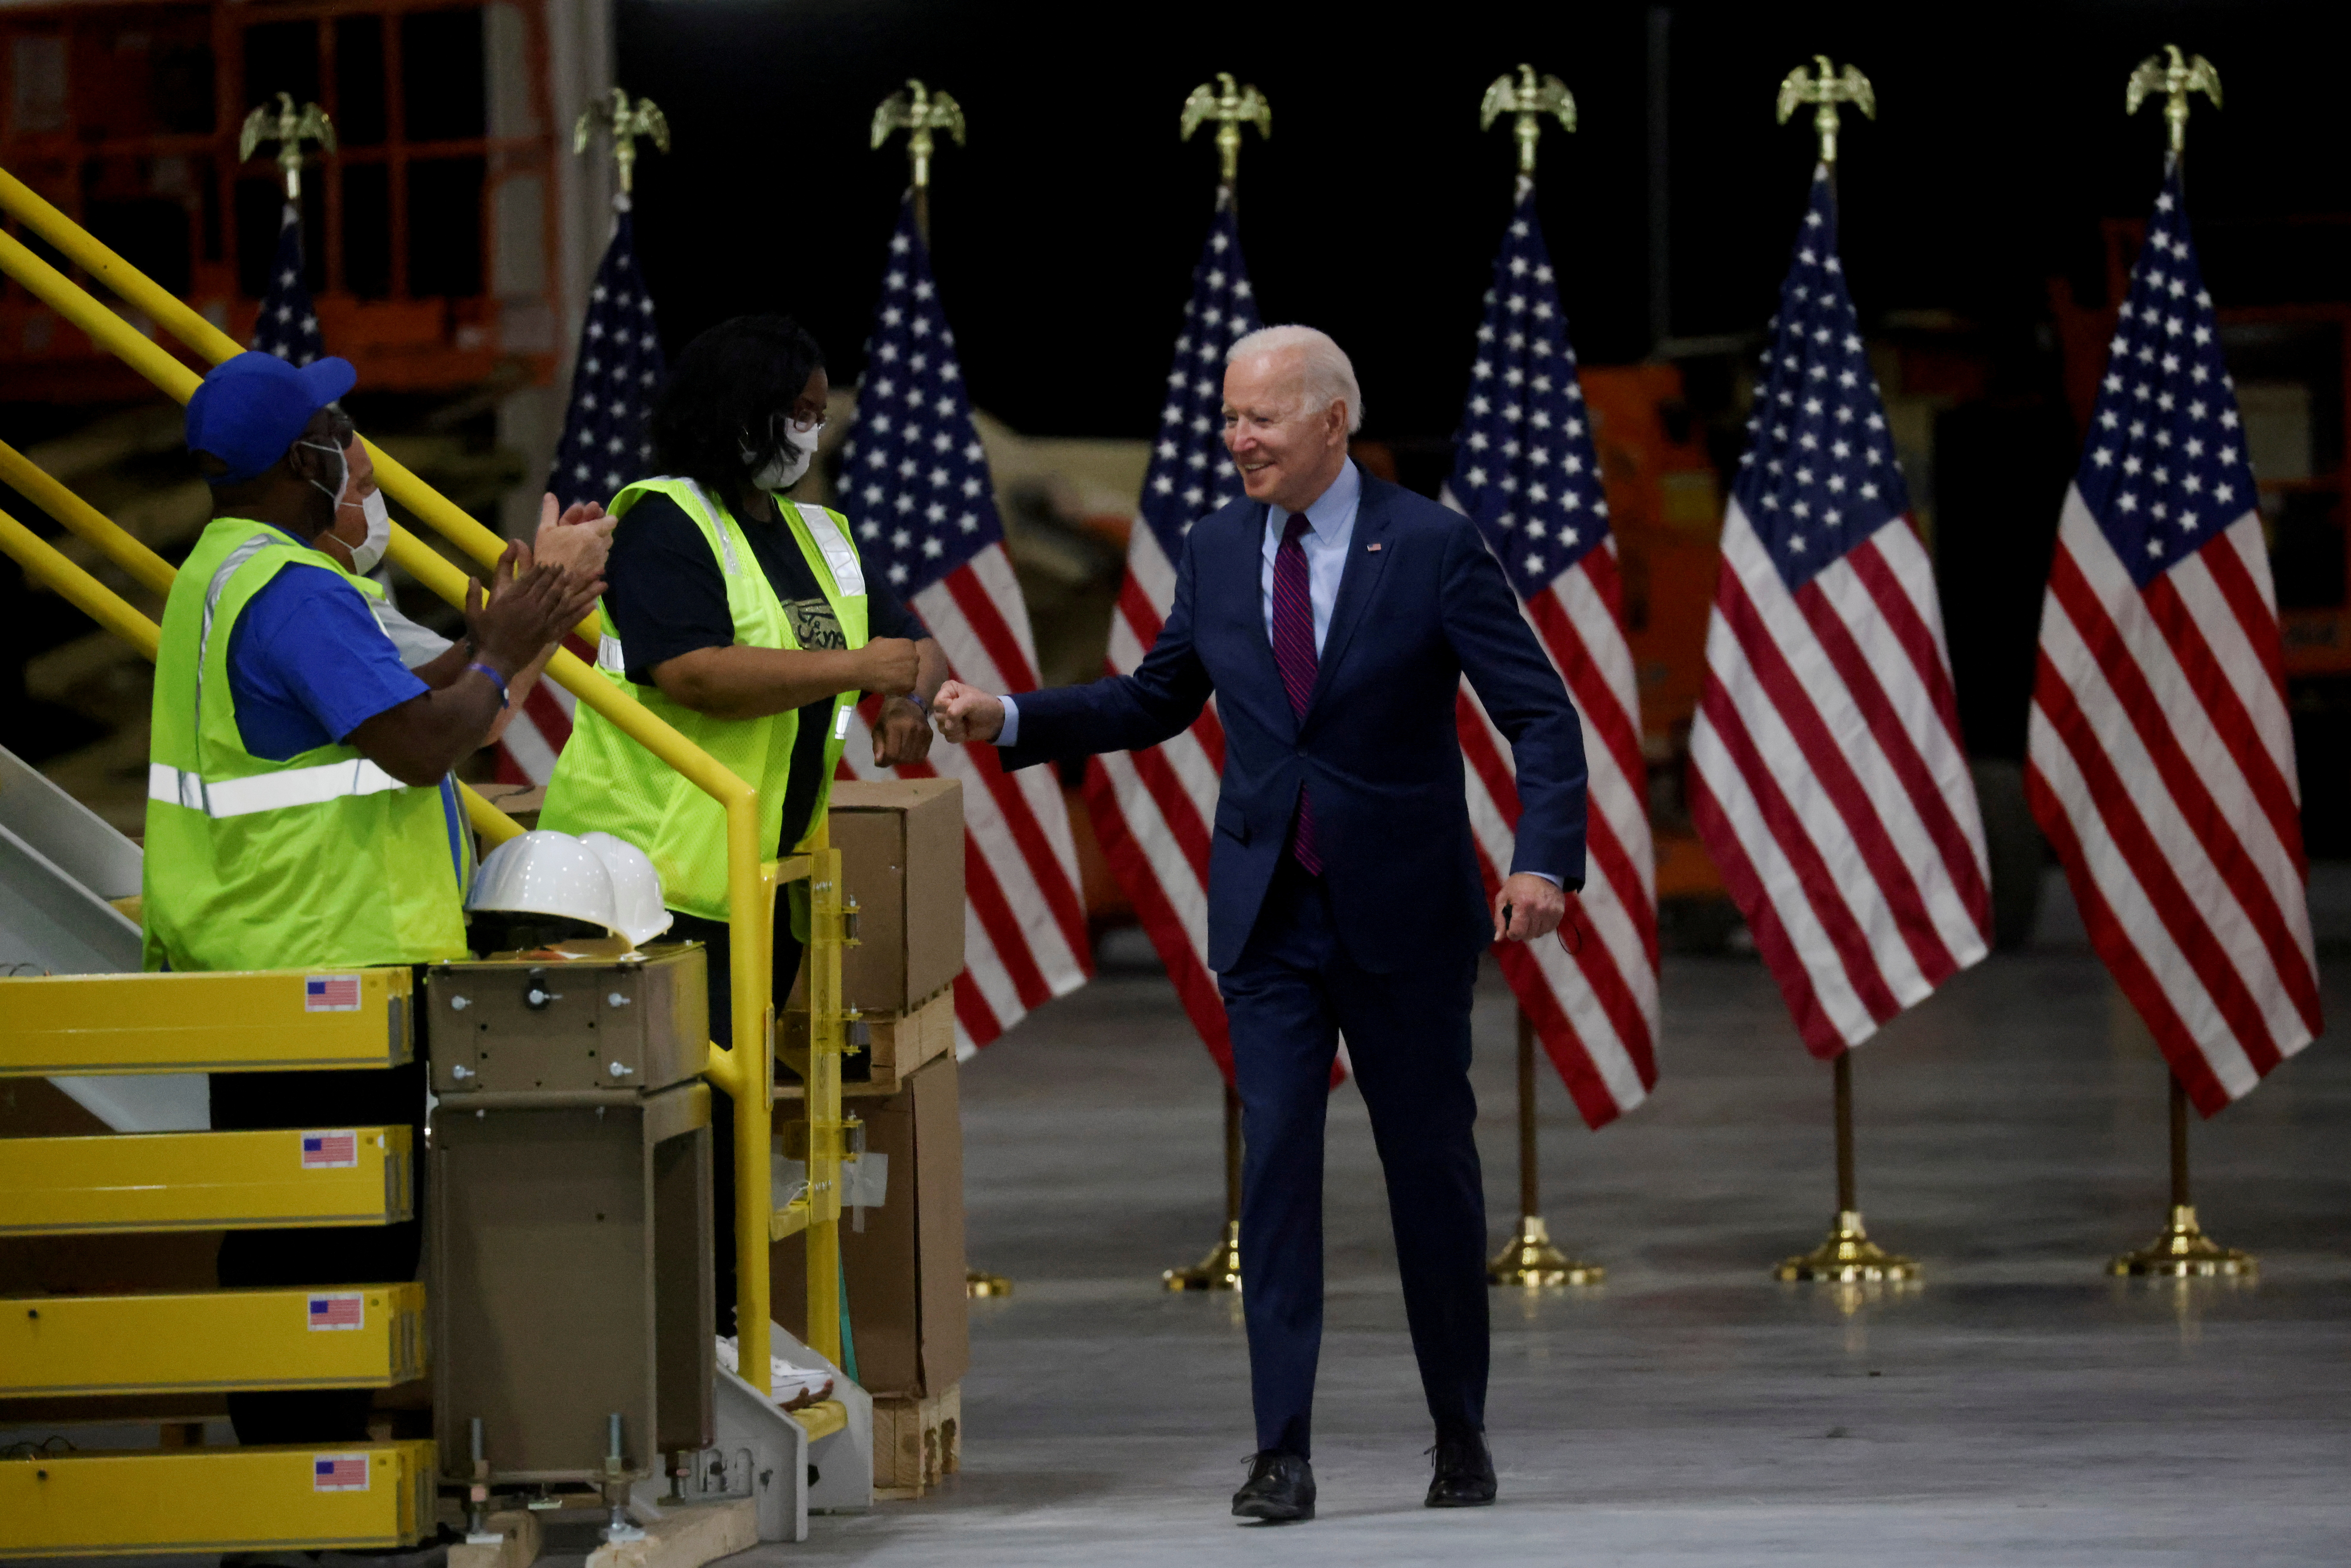 U.S. President Joe Biden bumps fists with workers after touring Ford Rouge Electric Vehicle Center in Dearborn, Michigan, U.S., May 18, 2021.  REUTERS/Leah Millis